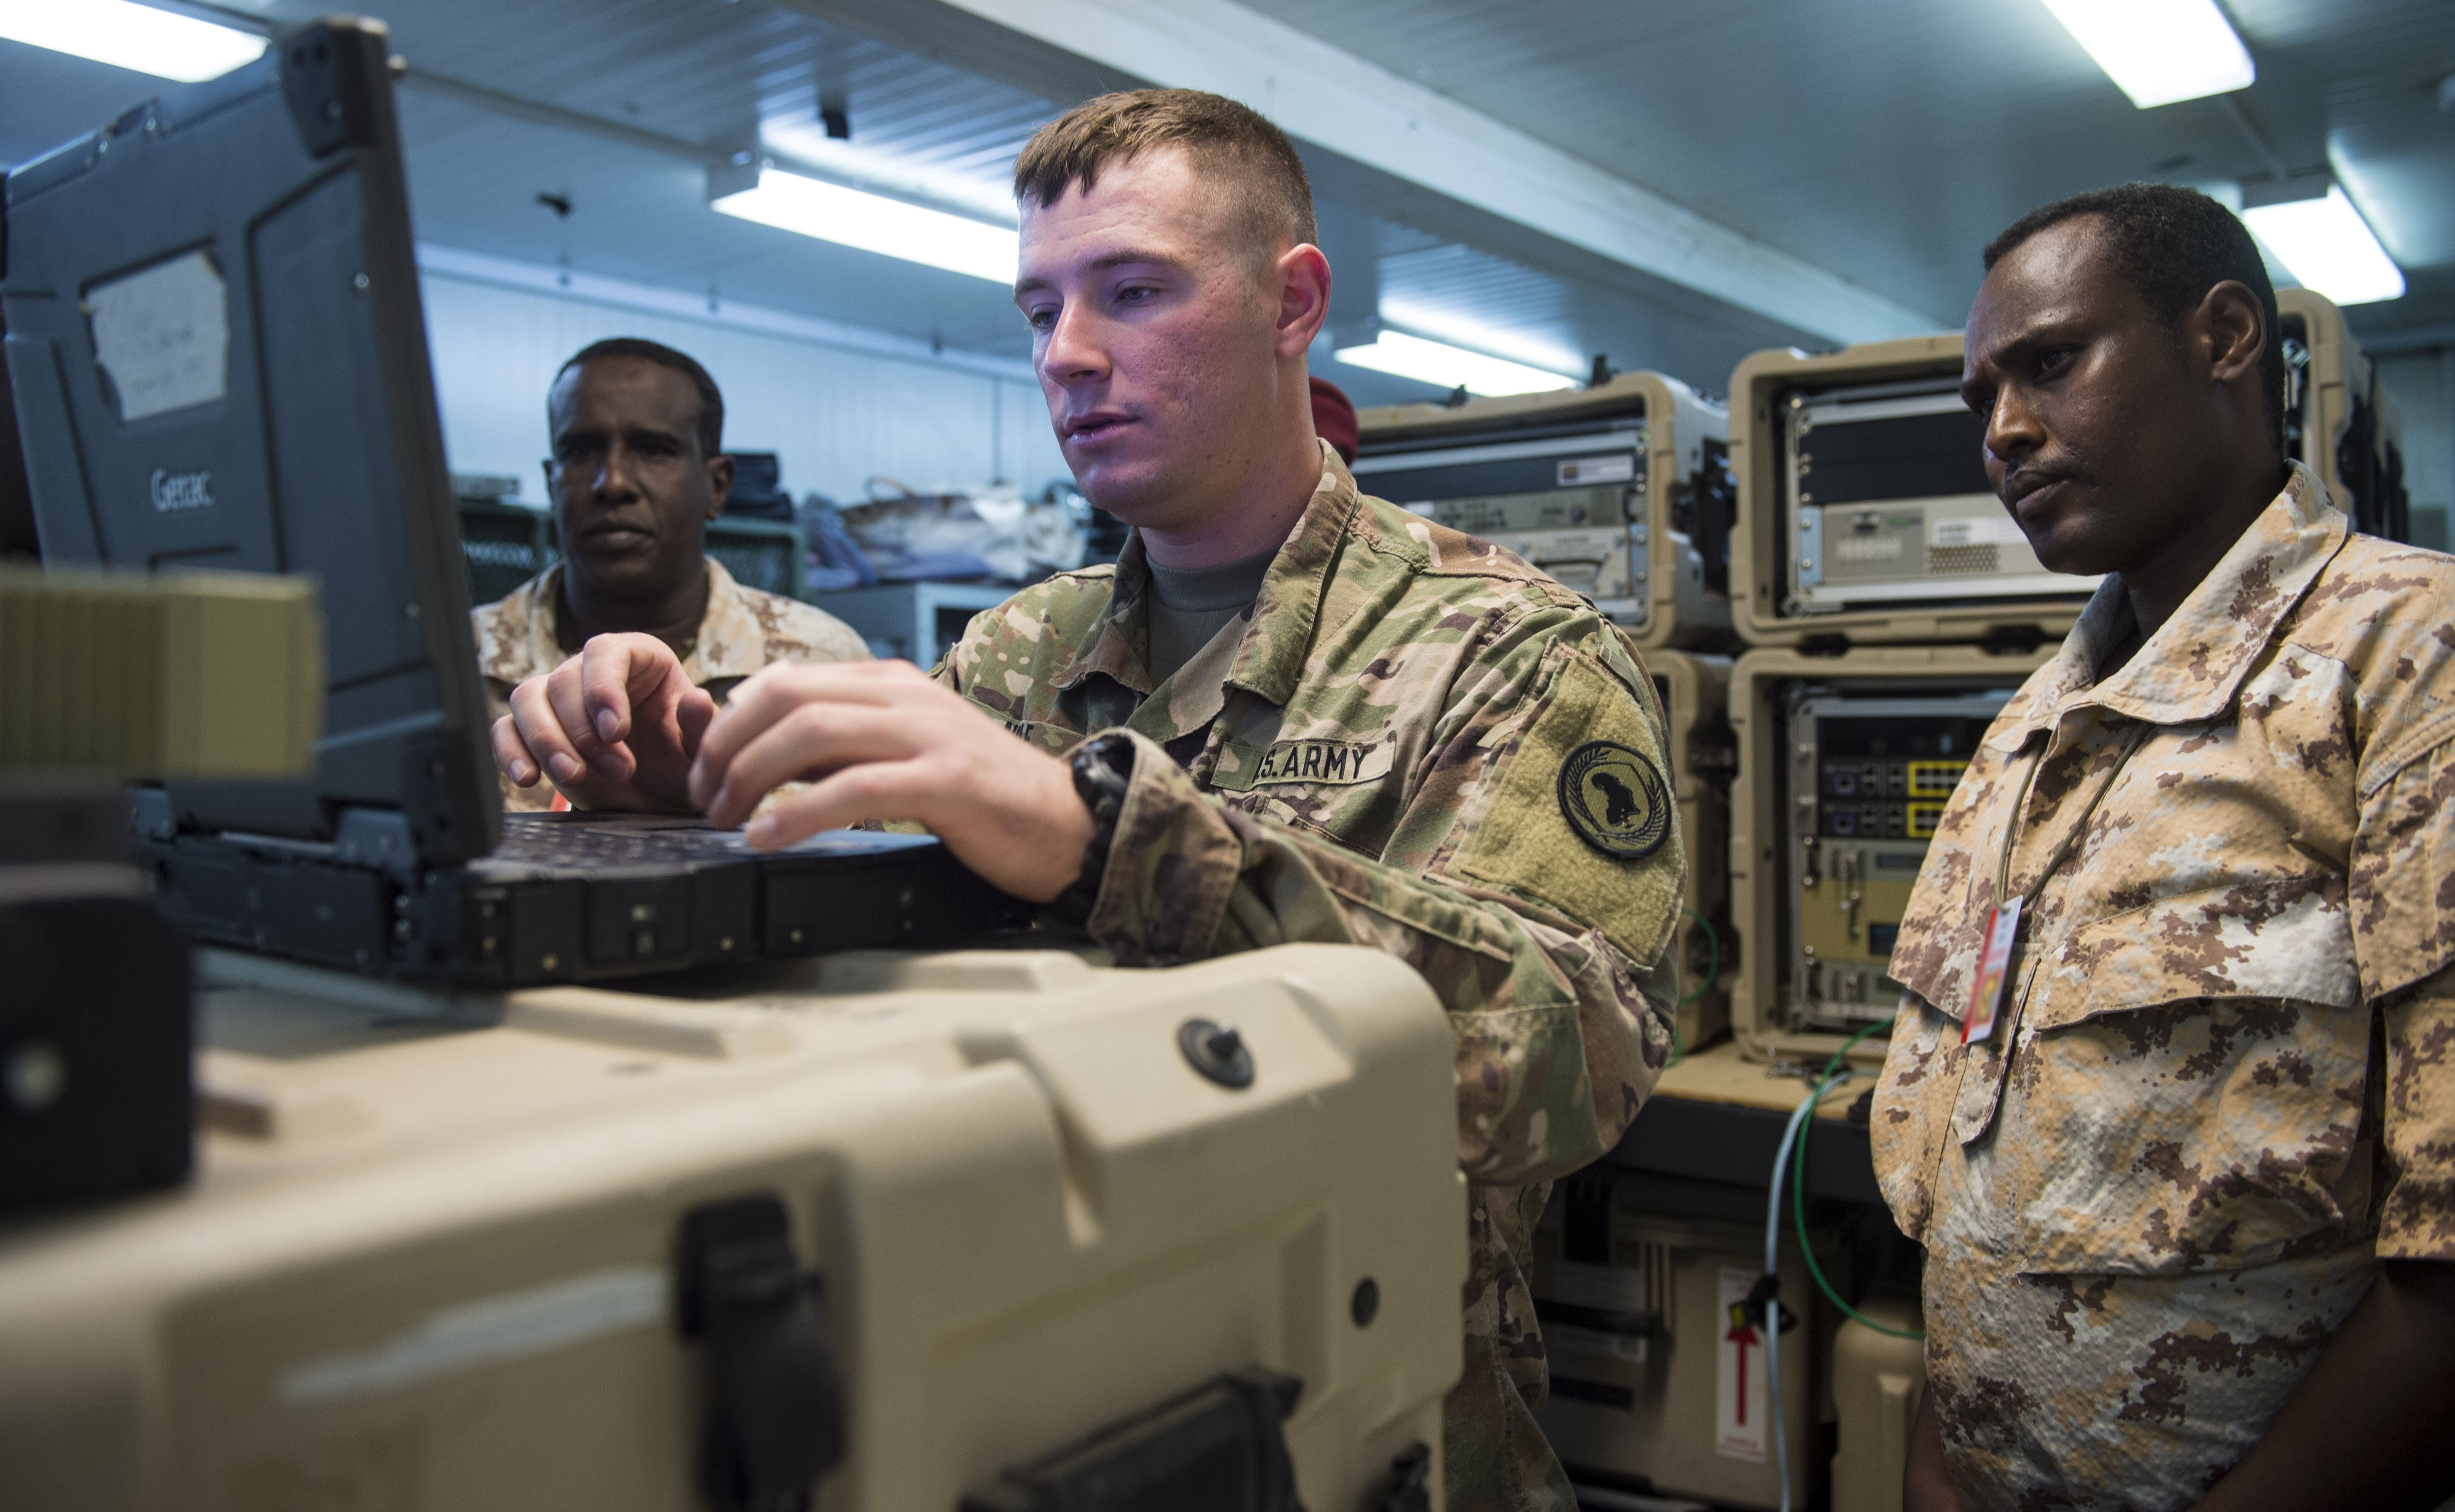 U.S. Army Spc. Taylor Noble, a multisystem transmission operator and maintainer assigned to the Combined Joint Task Force - Horn of Africa (CJTF-HOA) Communications Directorate, shows members of the Djibouti Armed Forces (FAD) how to acquire a satellite signal through using an antenna during a military-to-military exchange course at Camp Lemonnier, Djibouti, Jan. 8, 2018. Throughout a two-week period, communications experts advised Djiboutian service members on how to set up, operate, maintain, and troubleshoot network equipment to increase communication capabilities between African Union Mission in Somalia forces. (U.S. Air Force photo illustration by Staff Sgt. Timothy Moore)